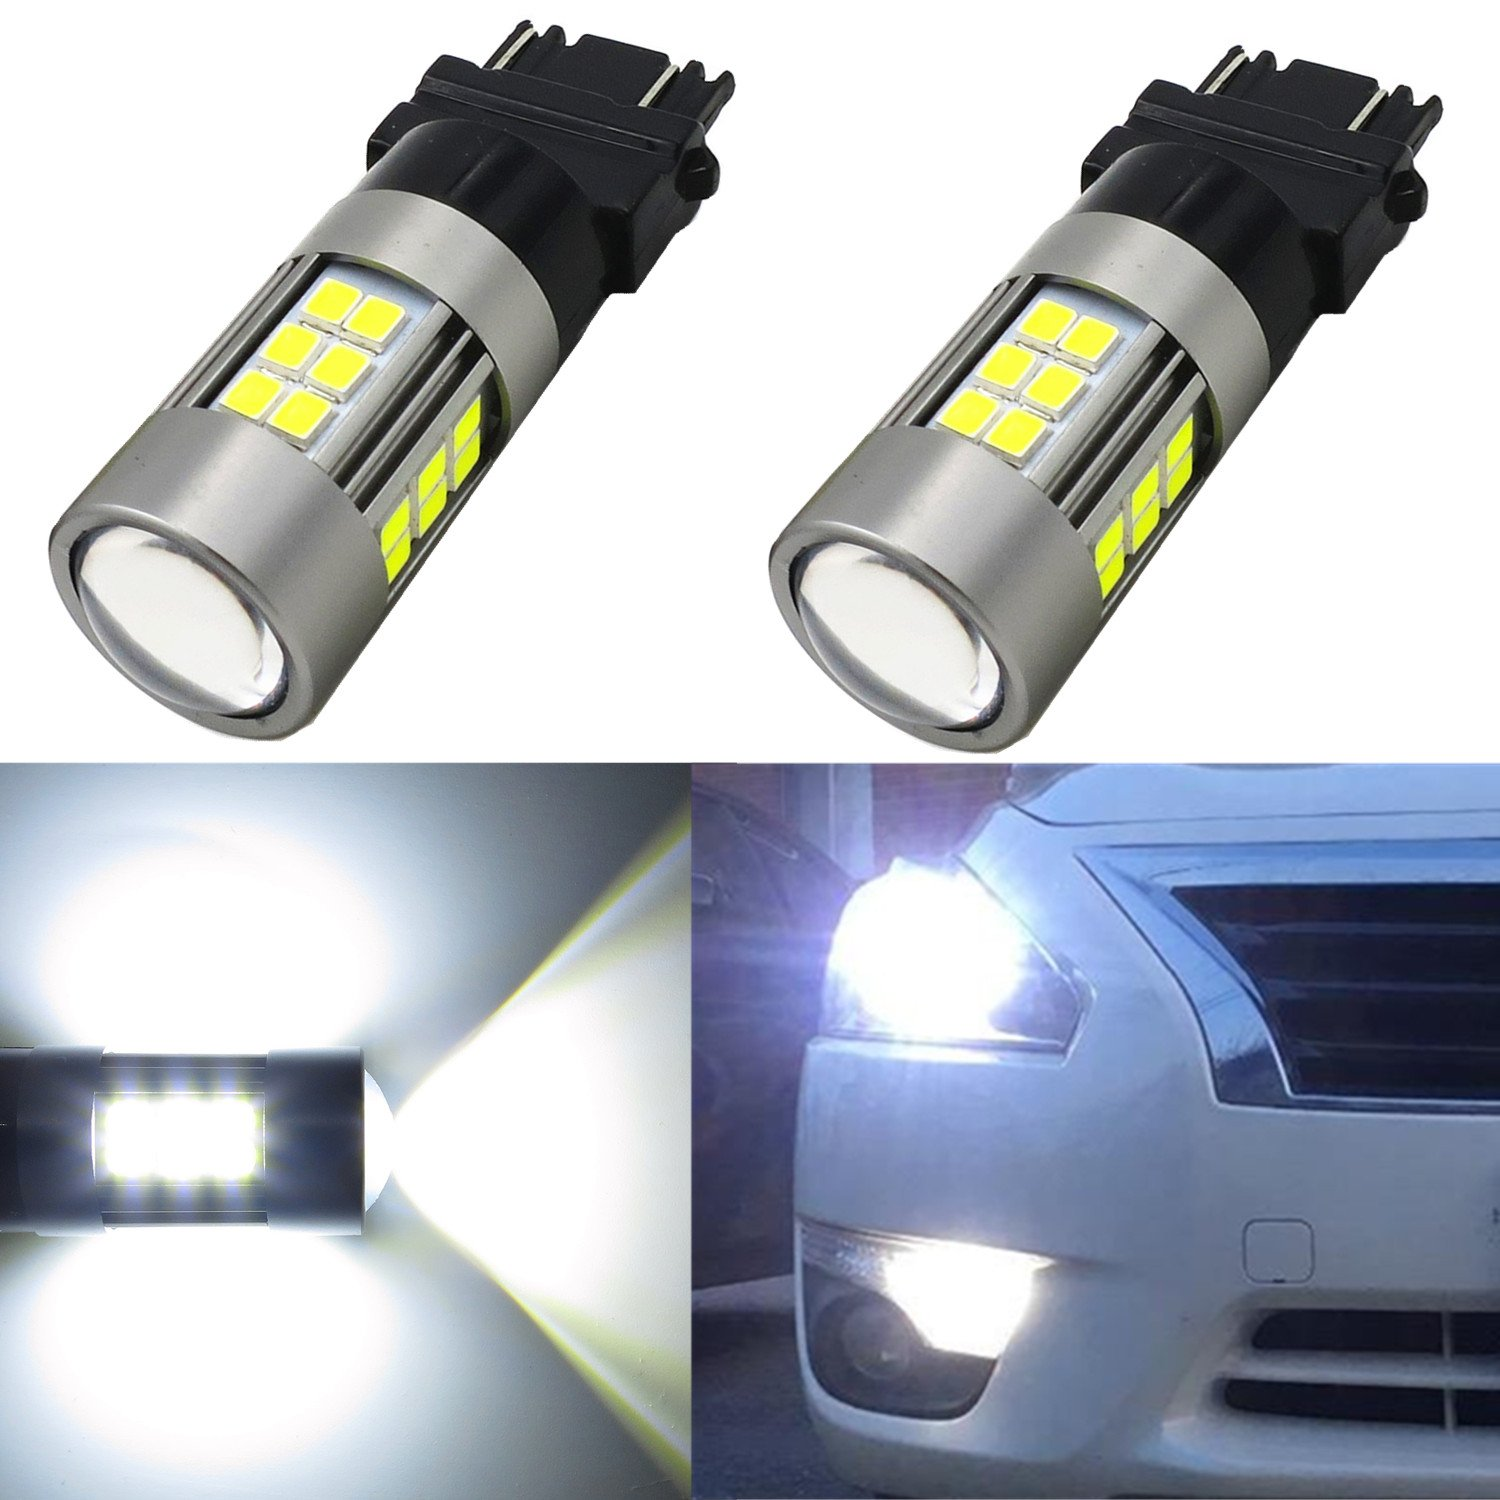 Alla Lighting Super Bright LED 3157 Bulb High Power 2835-SMD 4157 3457 3156 3057 3157 LED Bulb for Turn Signal Blinker Light Bulbs Replacement- Compatible Standard & CK Type, Amber Yellow (Set of 2) Alla-3157-2835-39Y